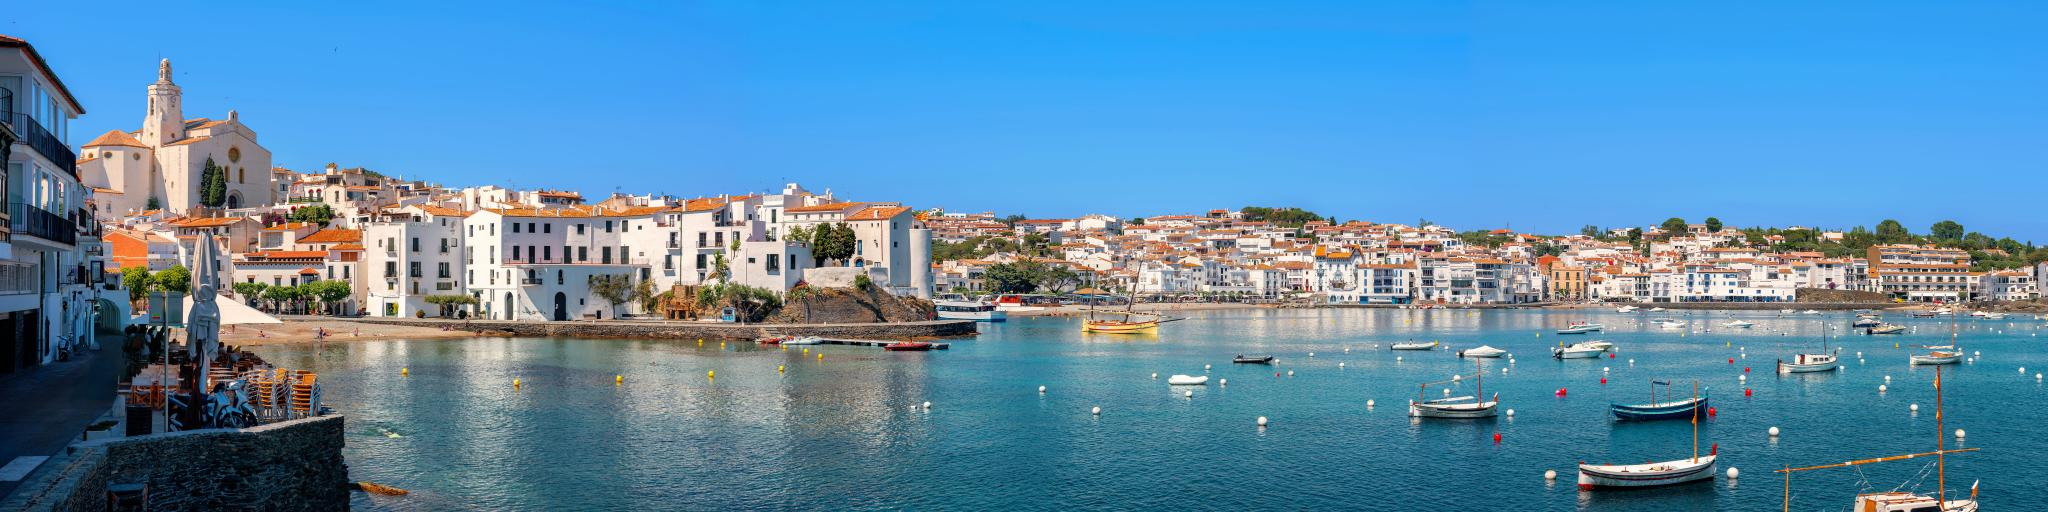 Panoramic view of Cadaques on Spain's Mediterranean seaside of Costa Brava